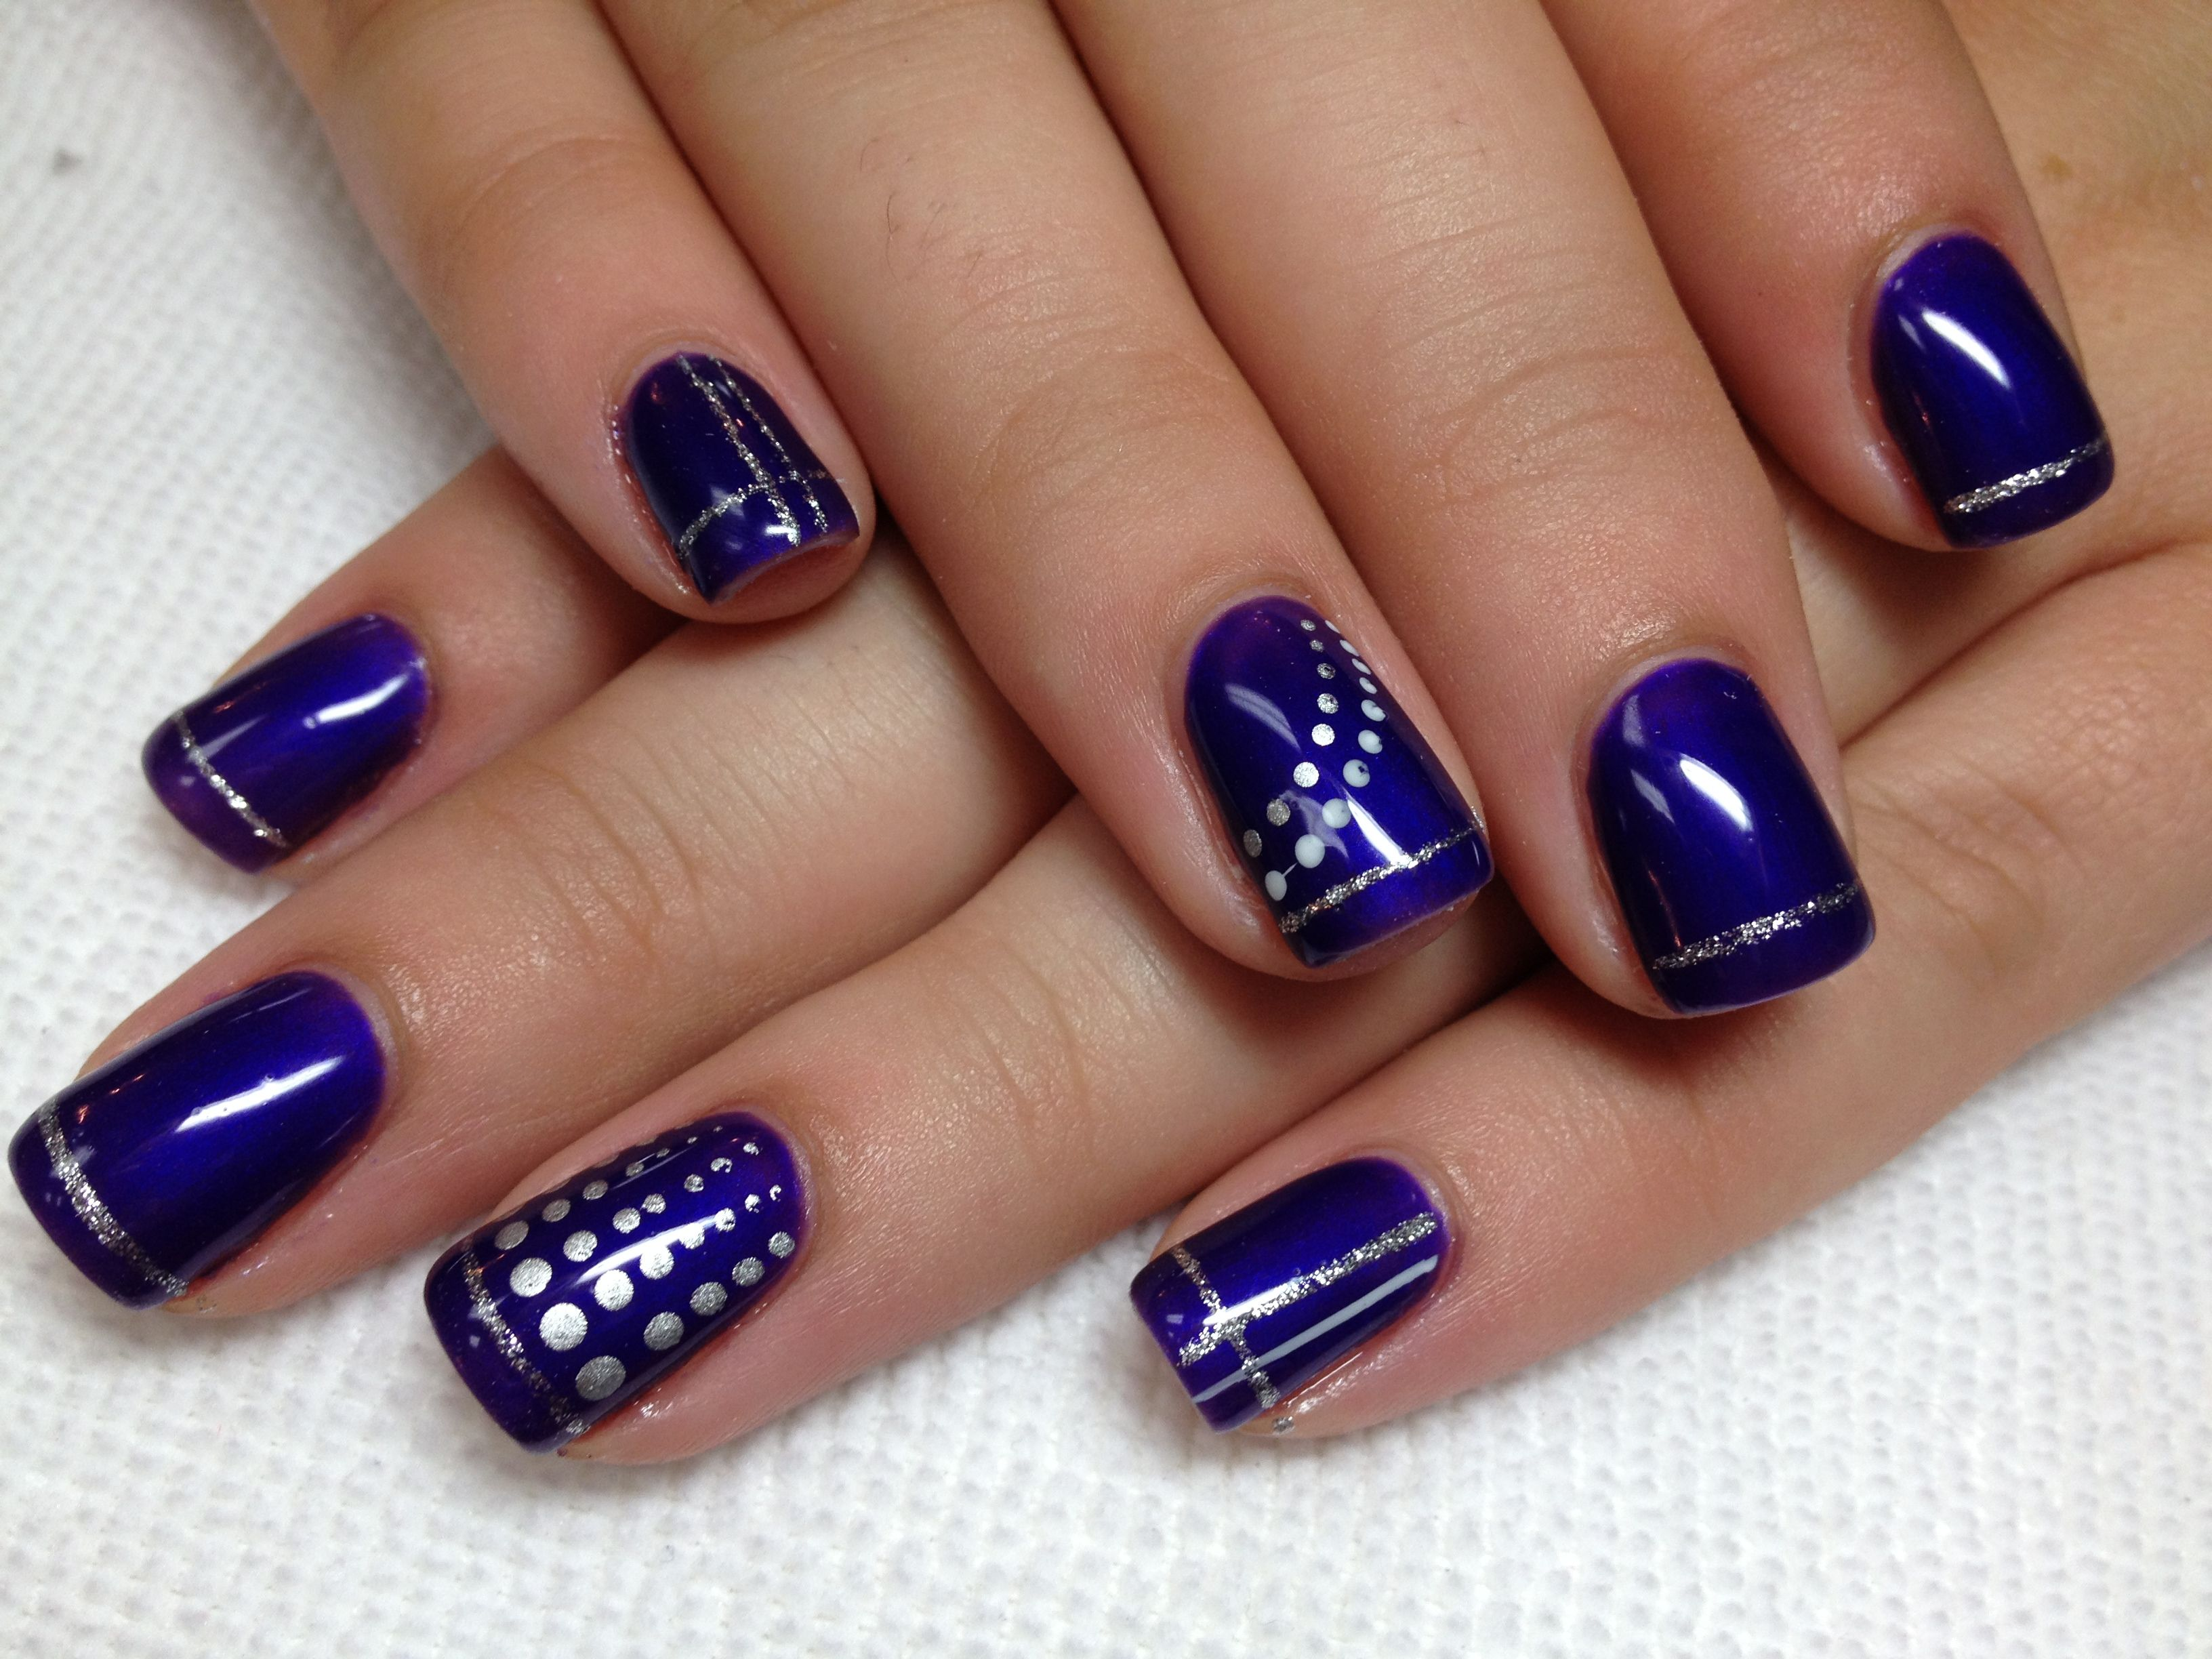 Shellac Nail Design Ideas best shellac nail designs shellac nails Purple Shellac W Silver Design